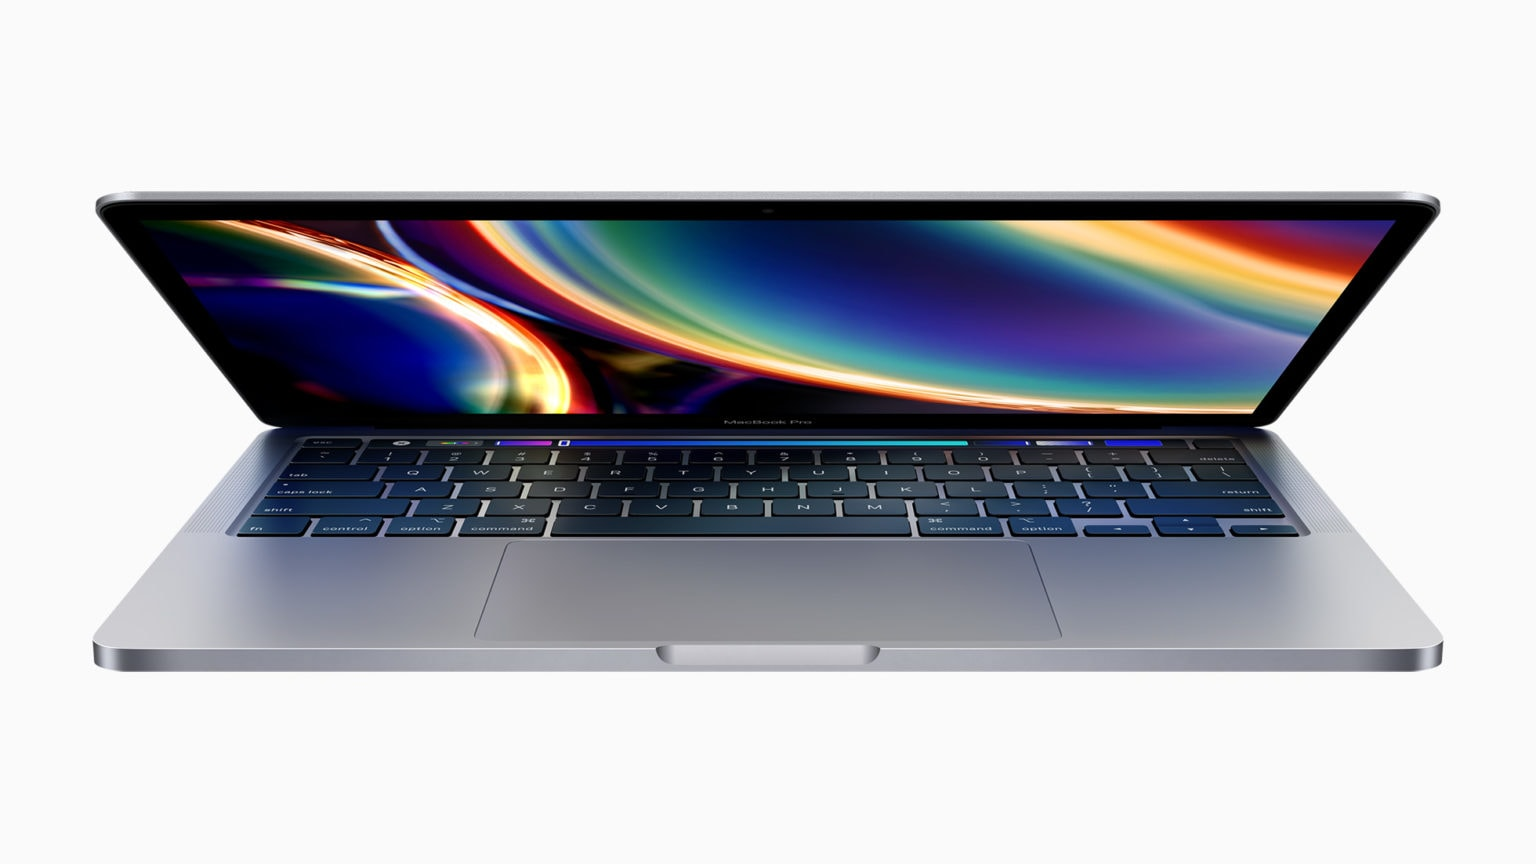 Apple_macbookpro-13-inch_screen_05042020